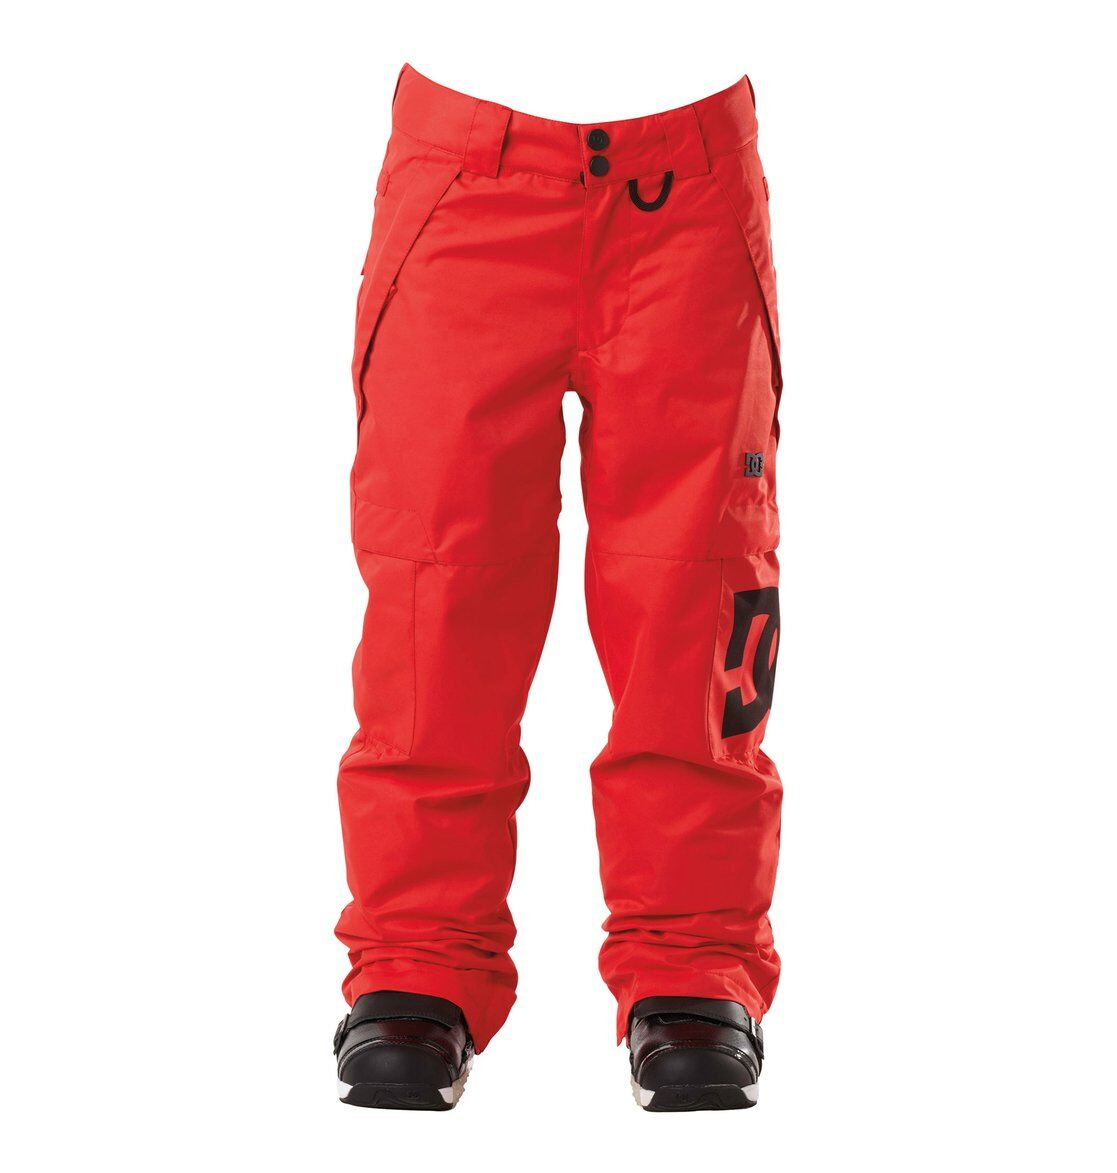 aa7195715fb8 Toddlers Snow Pants - Collections Pants Photo Parkerforsenate.Org